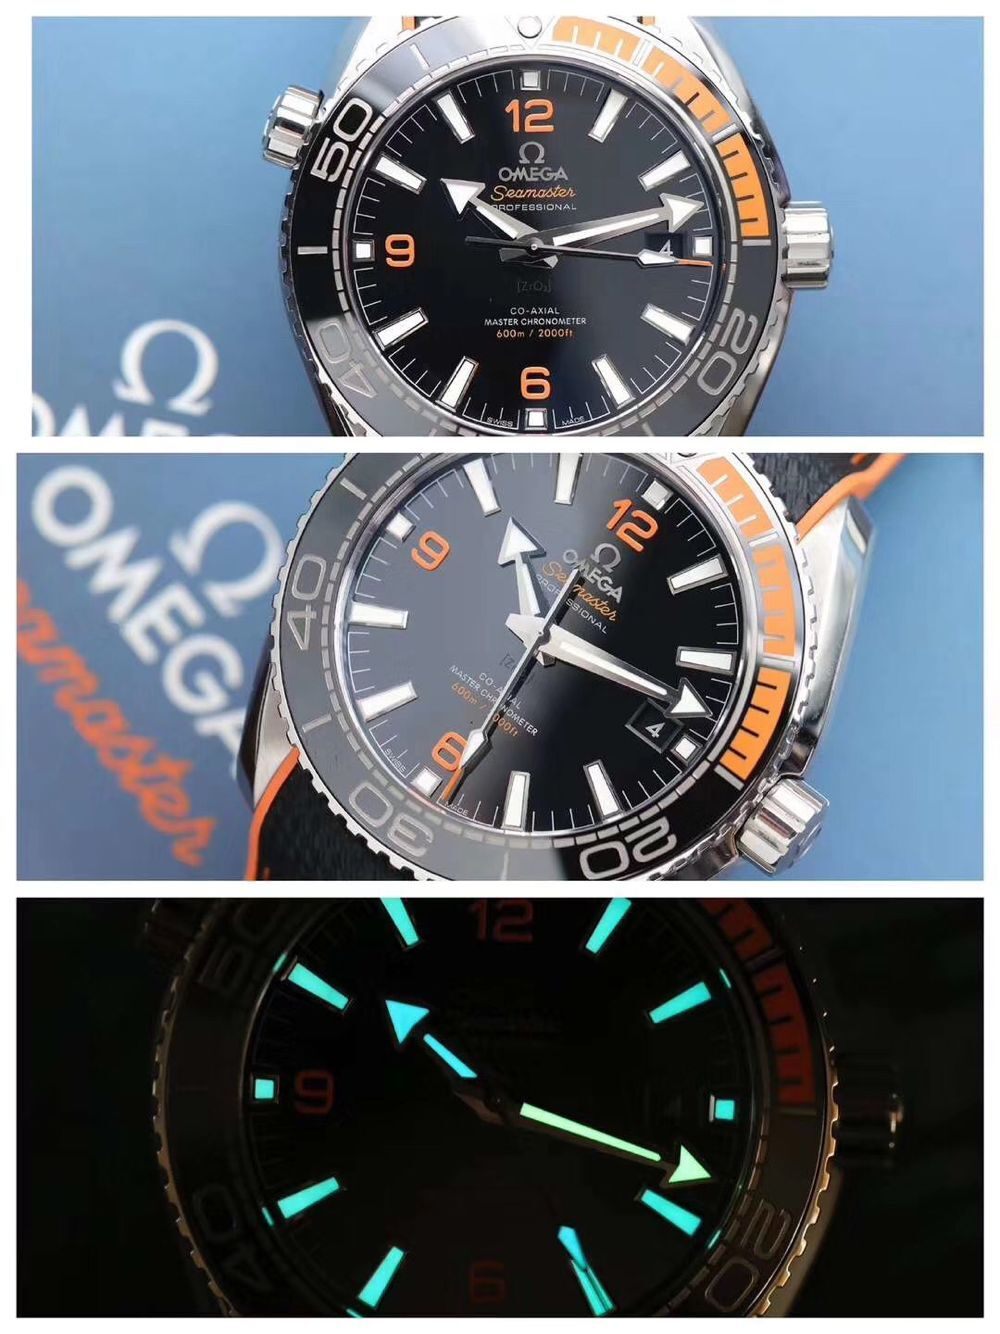 Omega Seamaster 600m mens watches